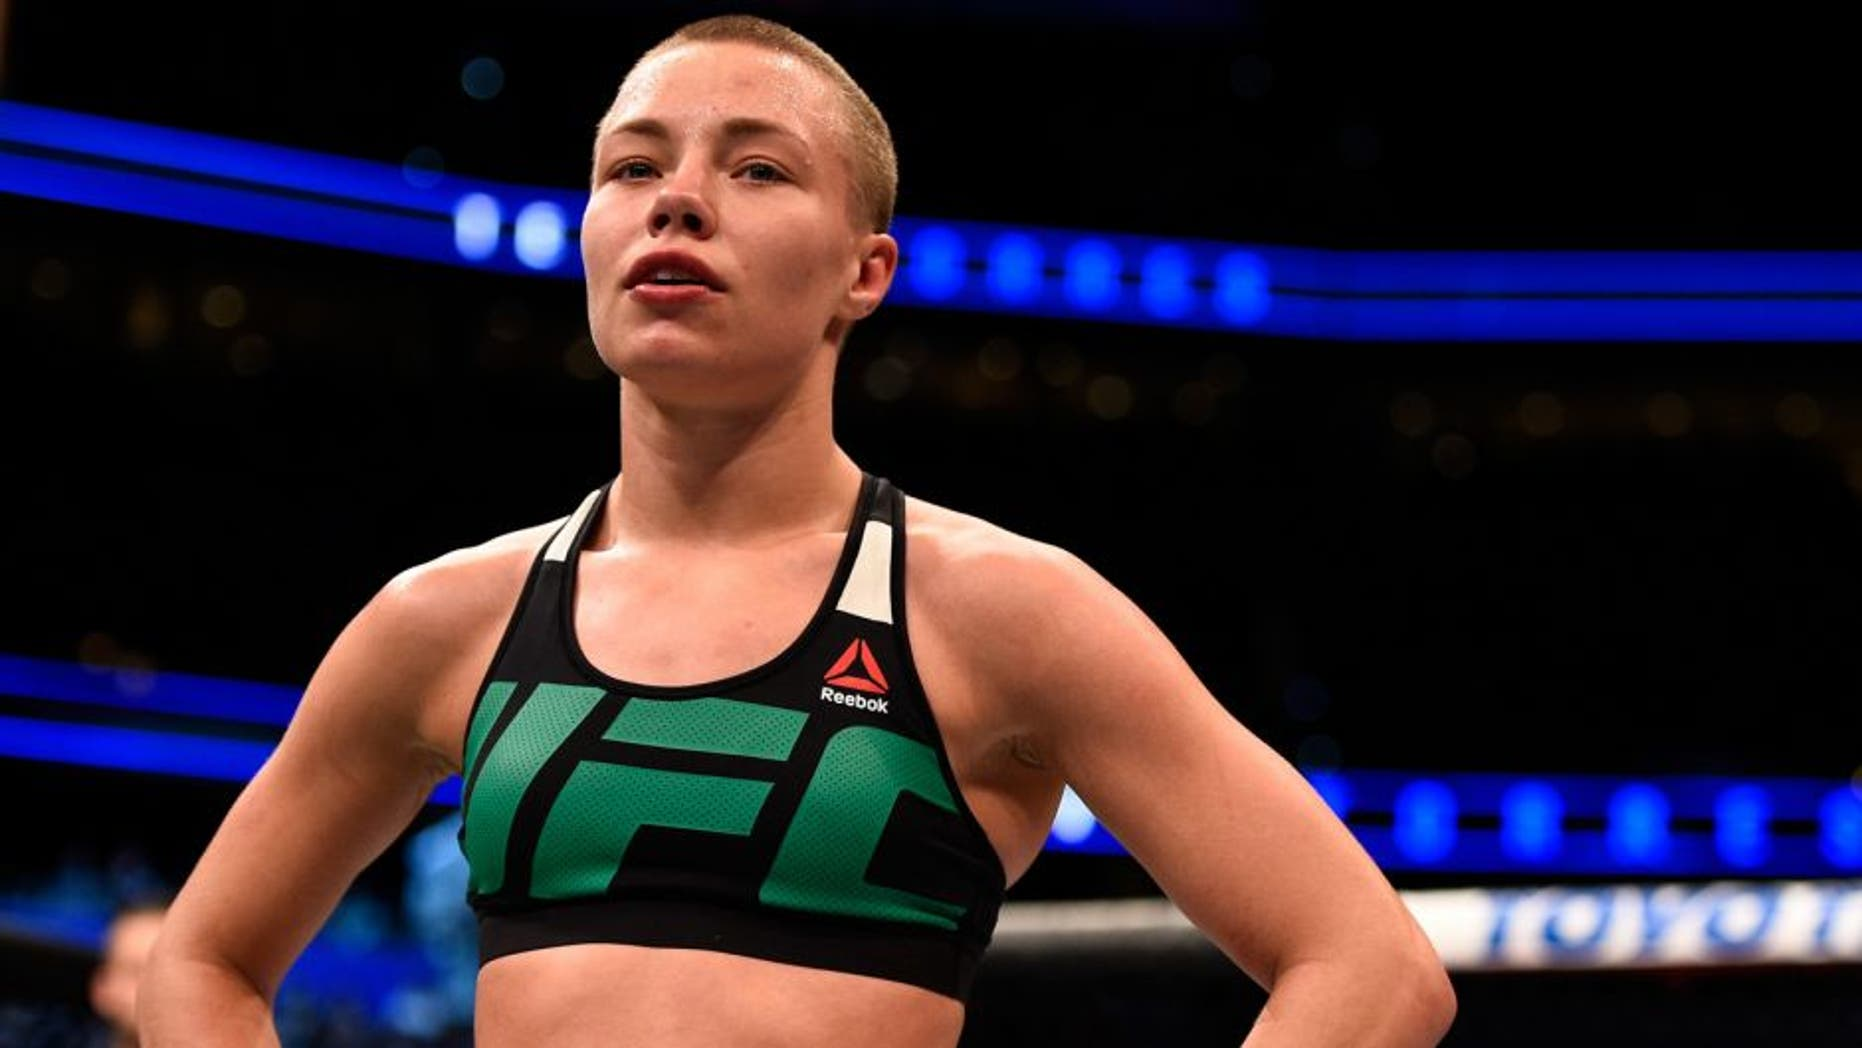 TAMPA, FL - APRIL 16: Rose Namajunas celebrates her victory over Tecia Torreshug after their women's strawweight bout during the UFC Fight Night event at Amalie Arena on April 16, 2016 in Tampa, Florida. (Photo by Jeff Bottari/Zuffa LLC/Zuffa LLC via Getty Images)